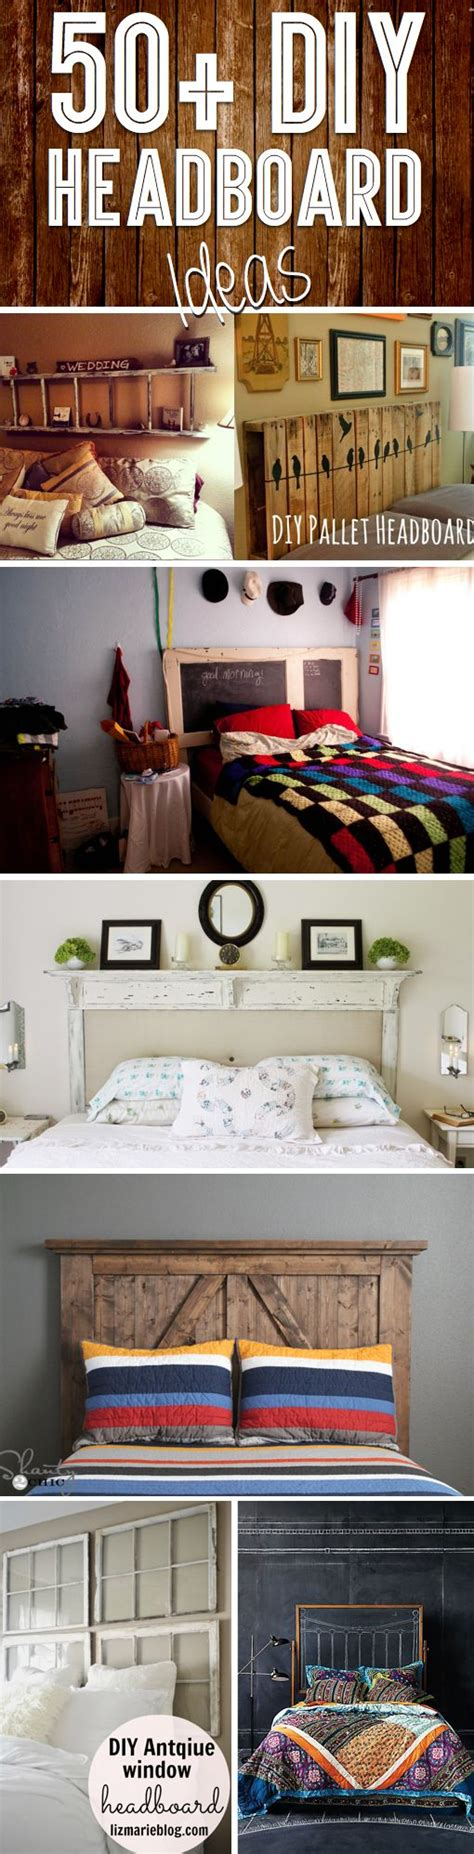 ideas to spice up bedroom 50 outstanding diy headboard ideas to spice up your bedroom a interior design